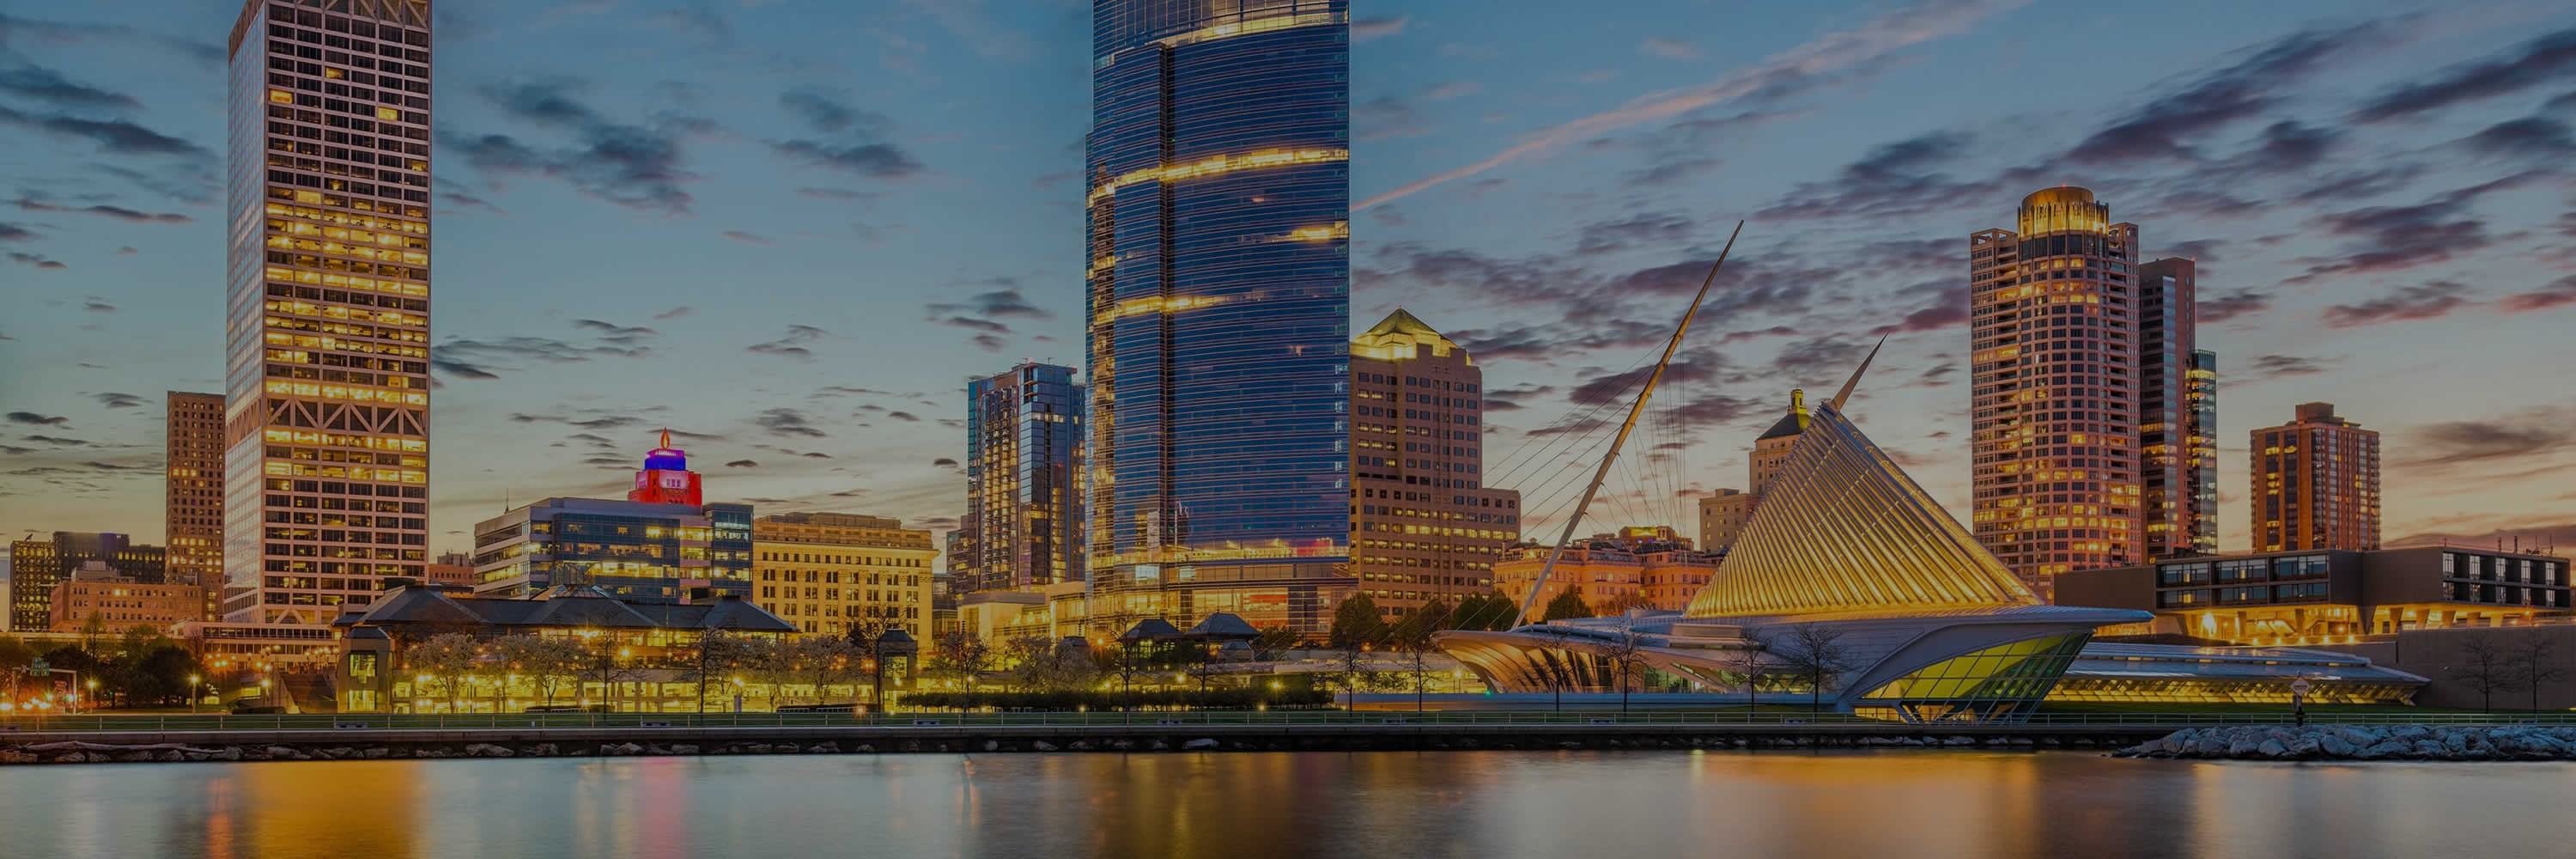 naem-2019-conference-banner-ehs-operational-excellence-pittsburgh-pennsylvania-skyline-1800x600